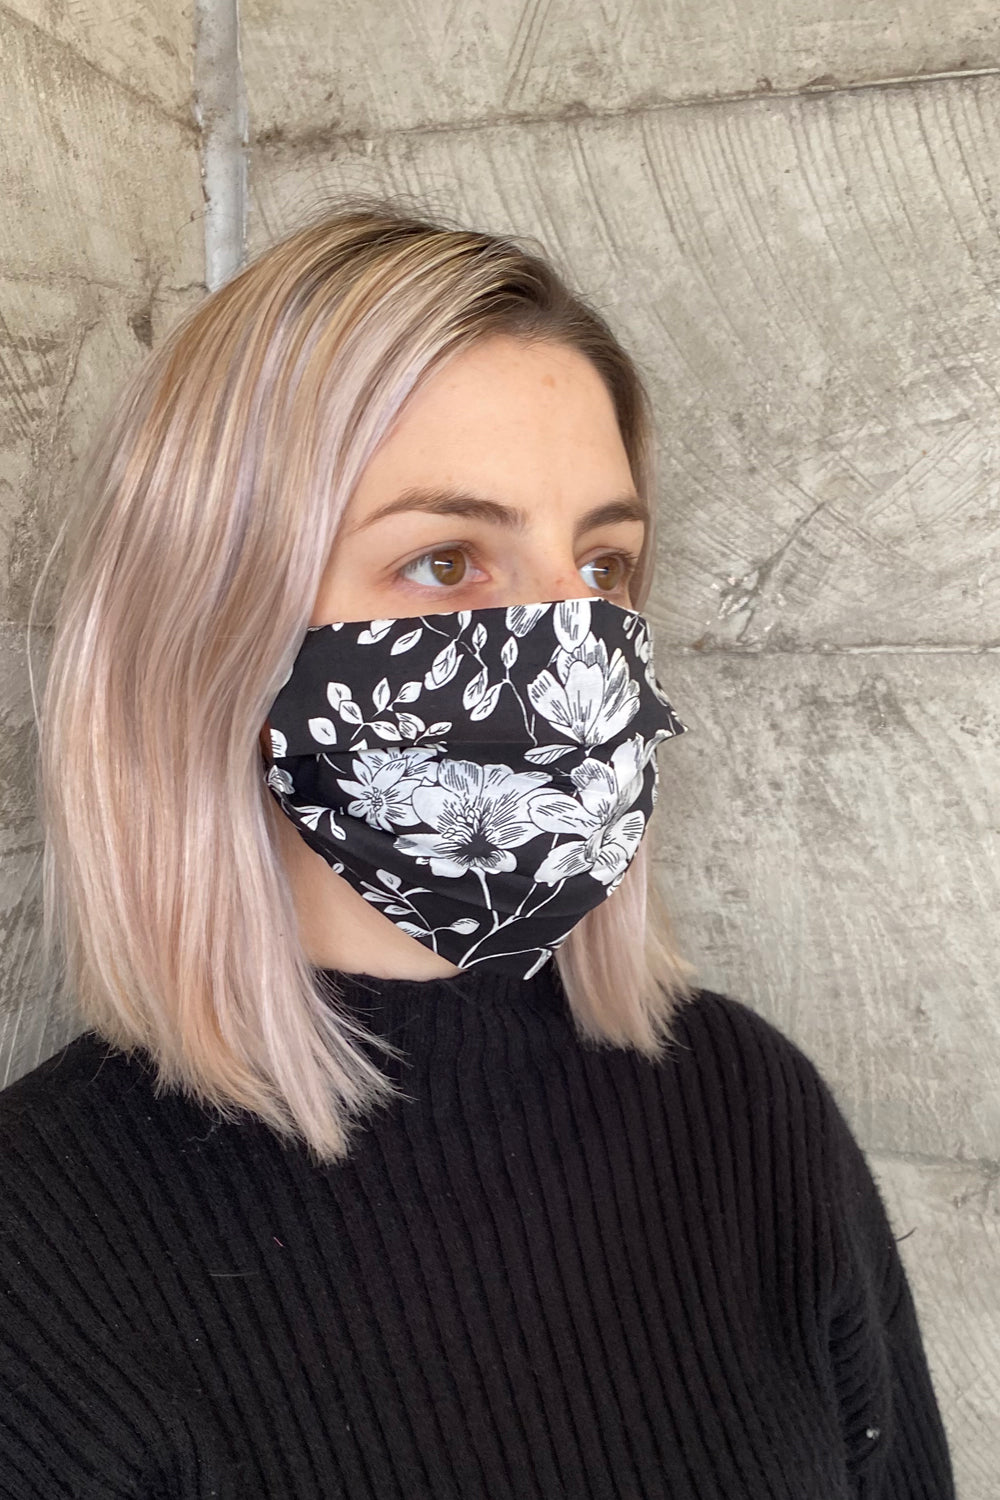 WOMEN'S BASIC 2 - Wholesale Corporate Mask - Email to enquire